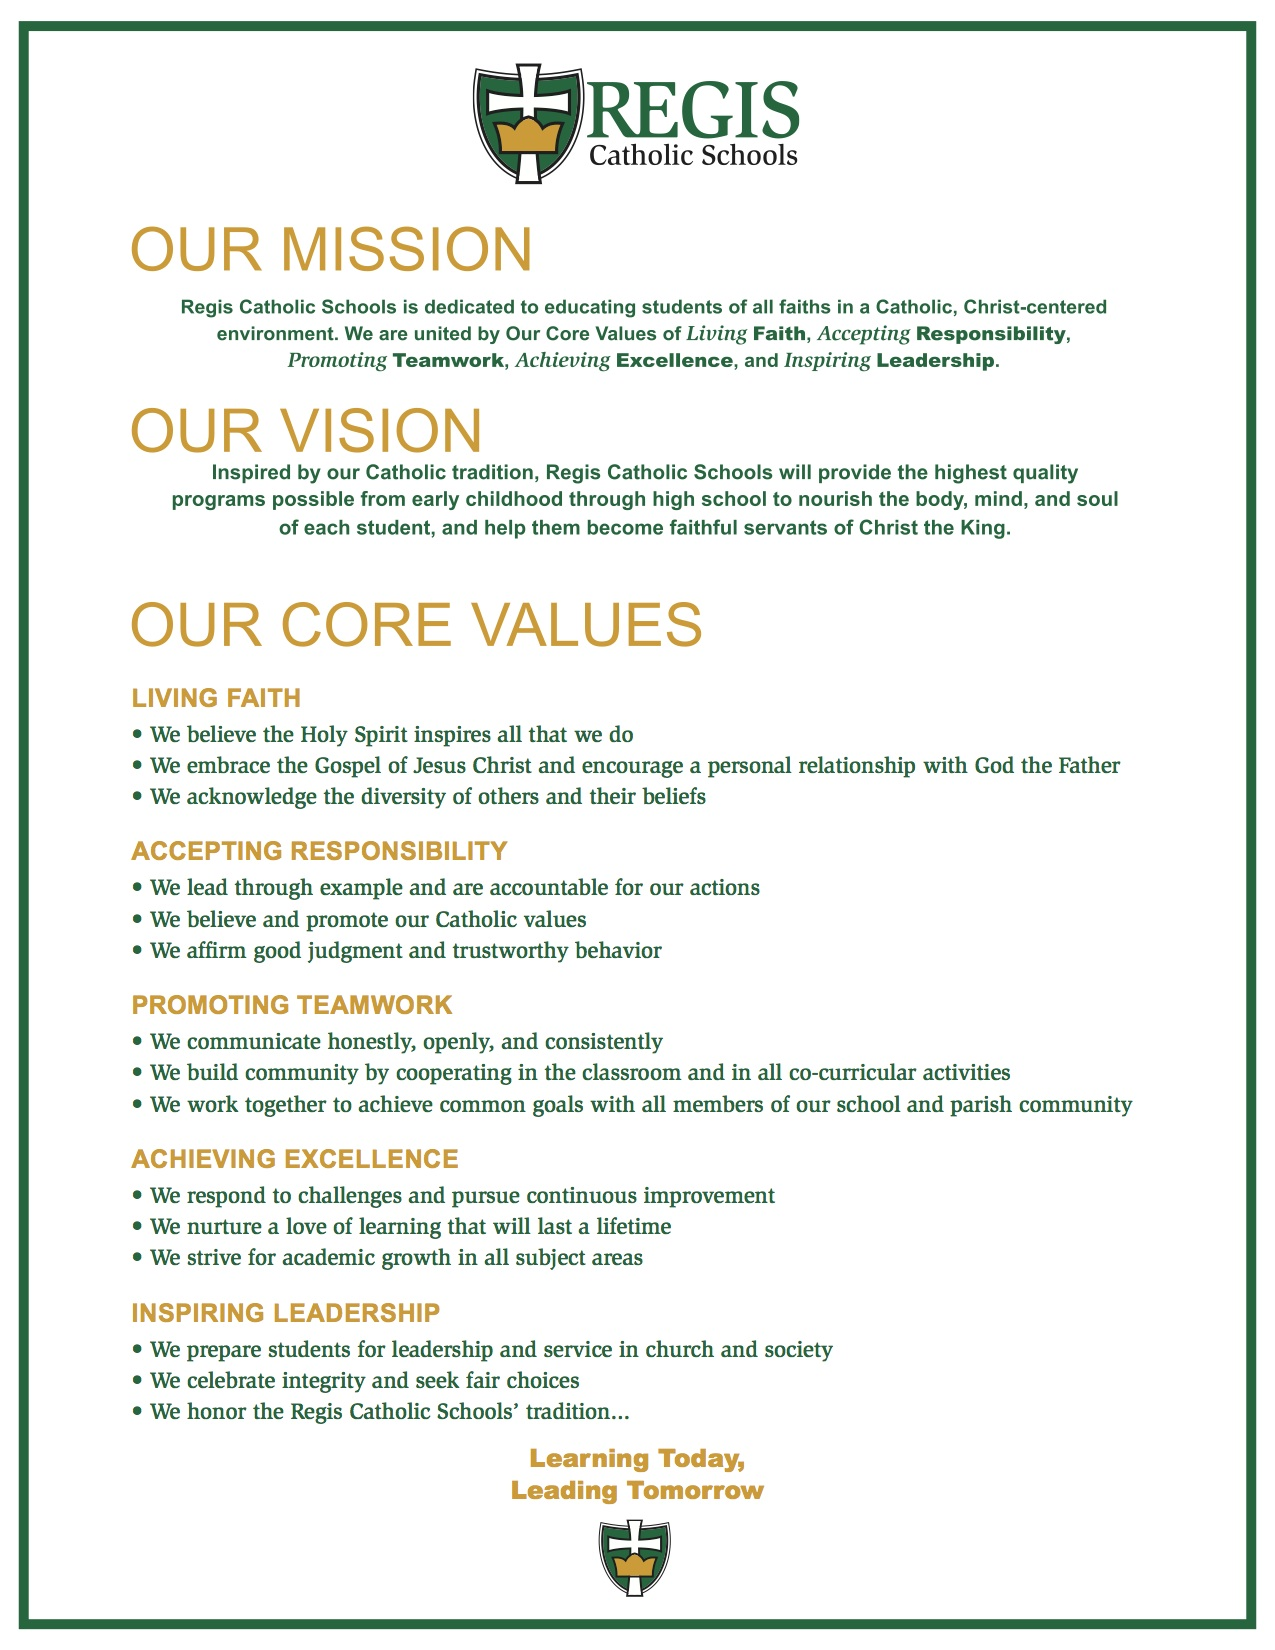 Mission Vision And Values Regis Catholic Schools